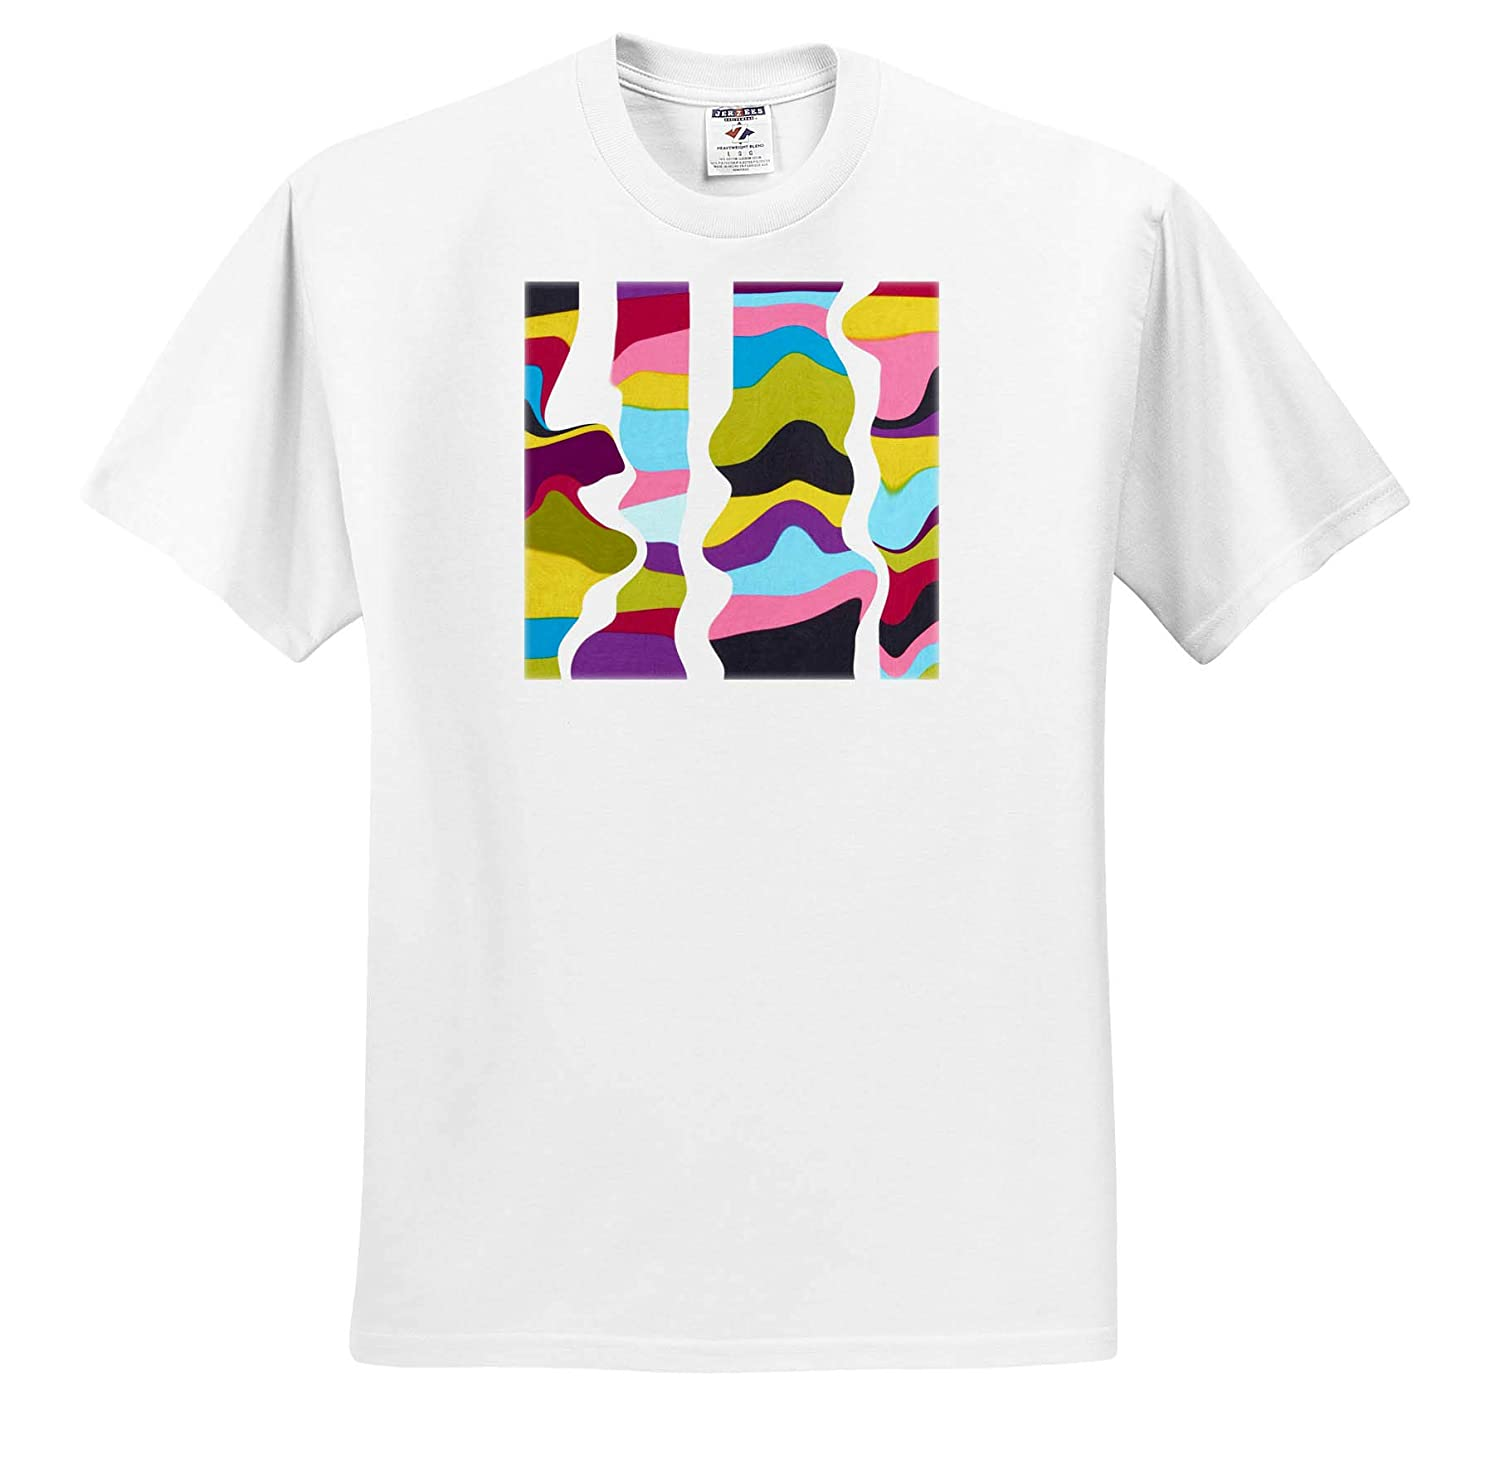 Digital Contemporary T-Shirts Image of Digital Painting Rivers of Color Run Thru Our Lives 3dRose Lens Art by Florene